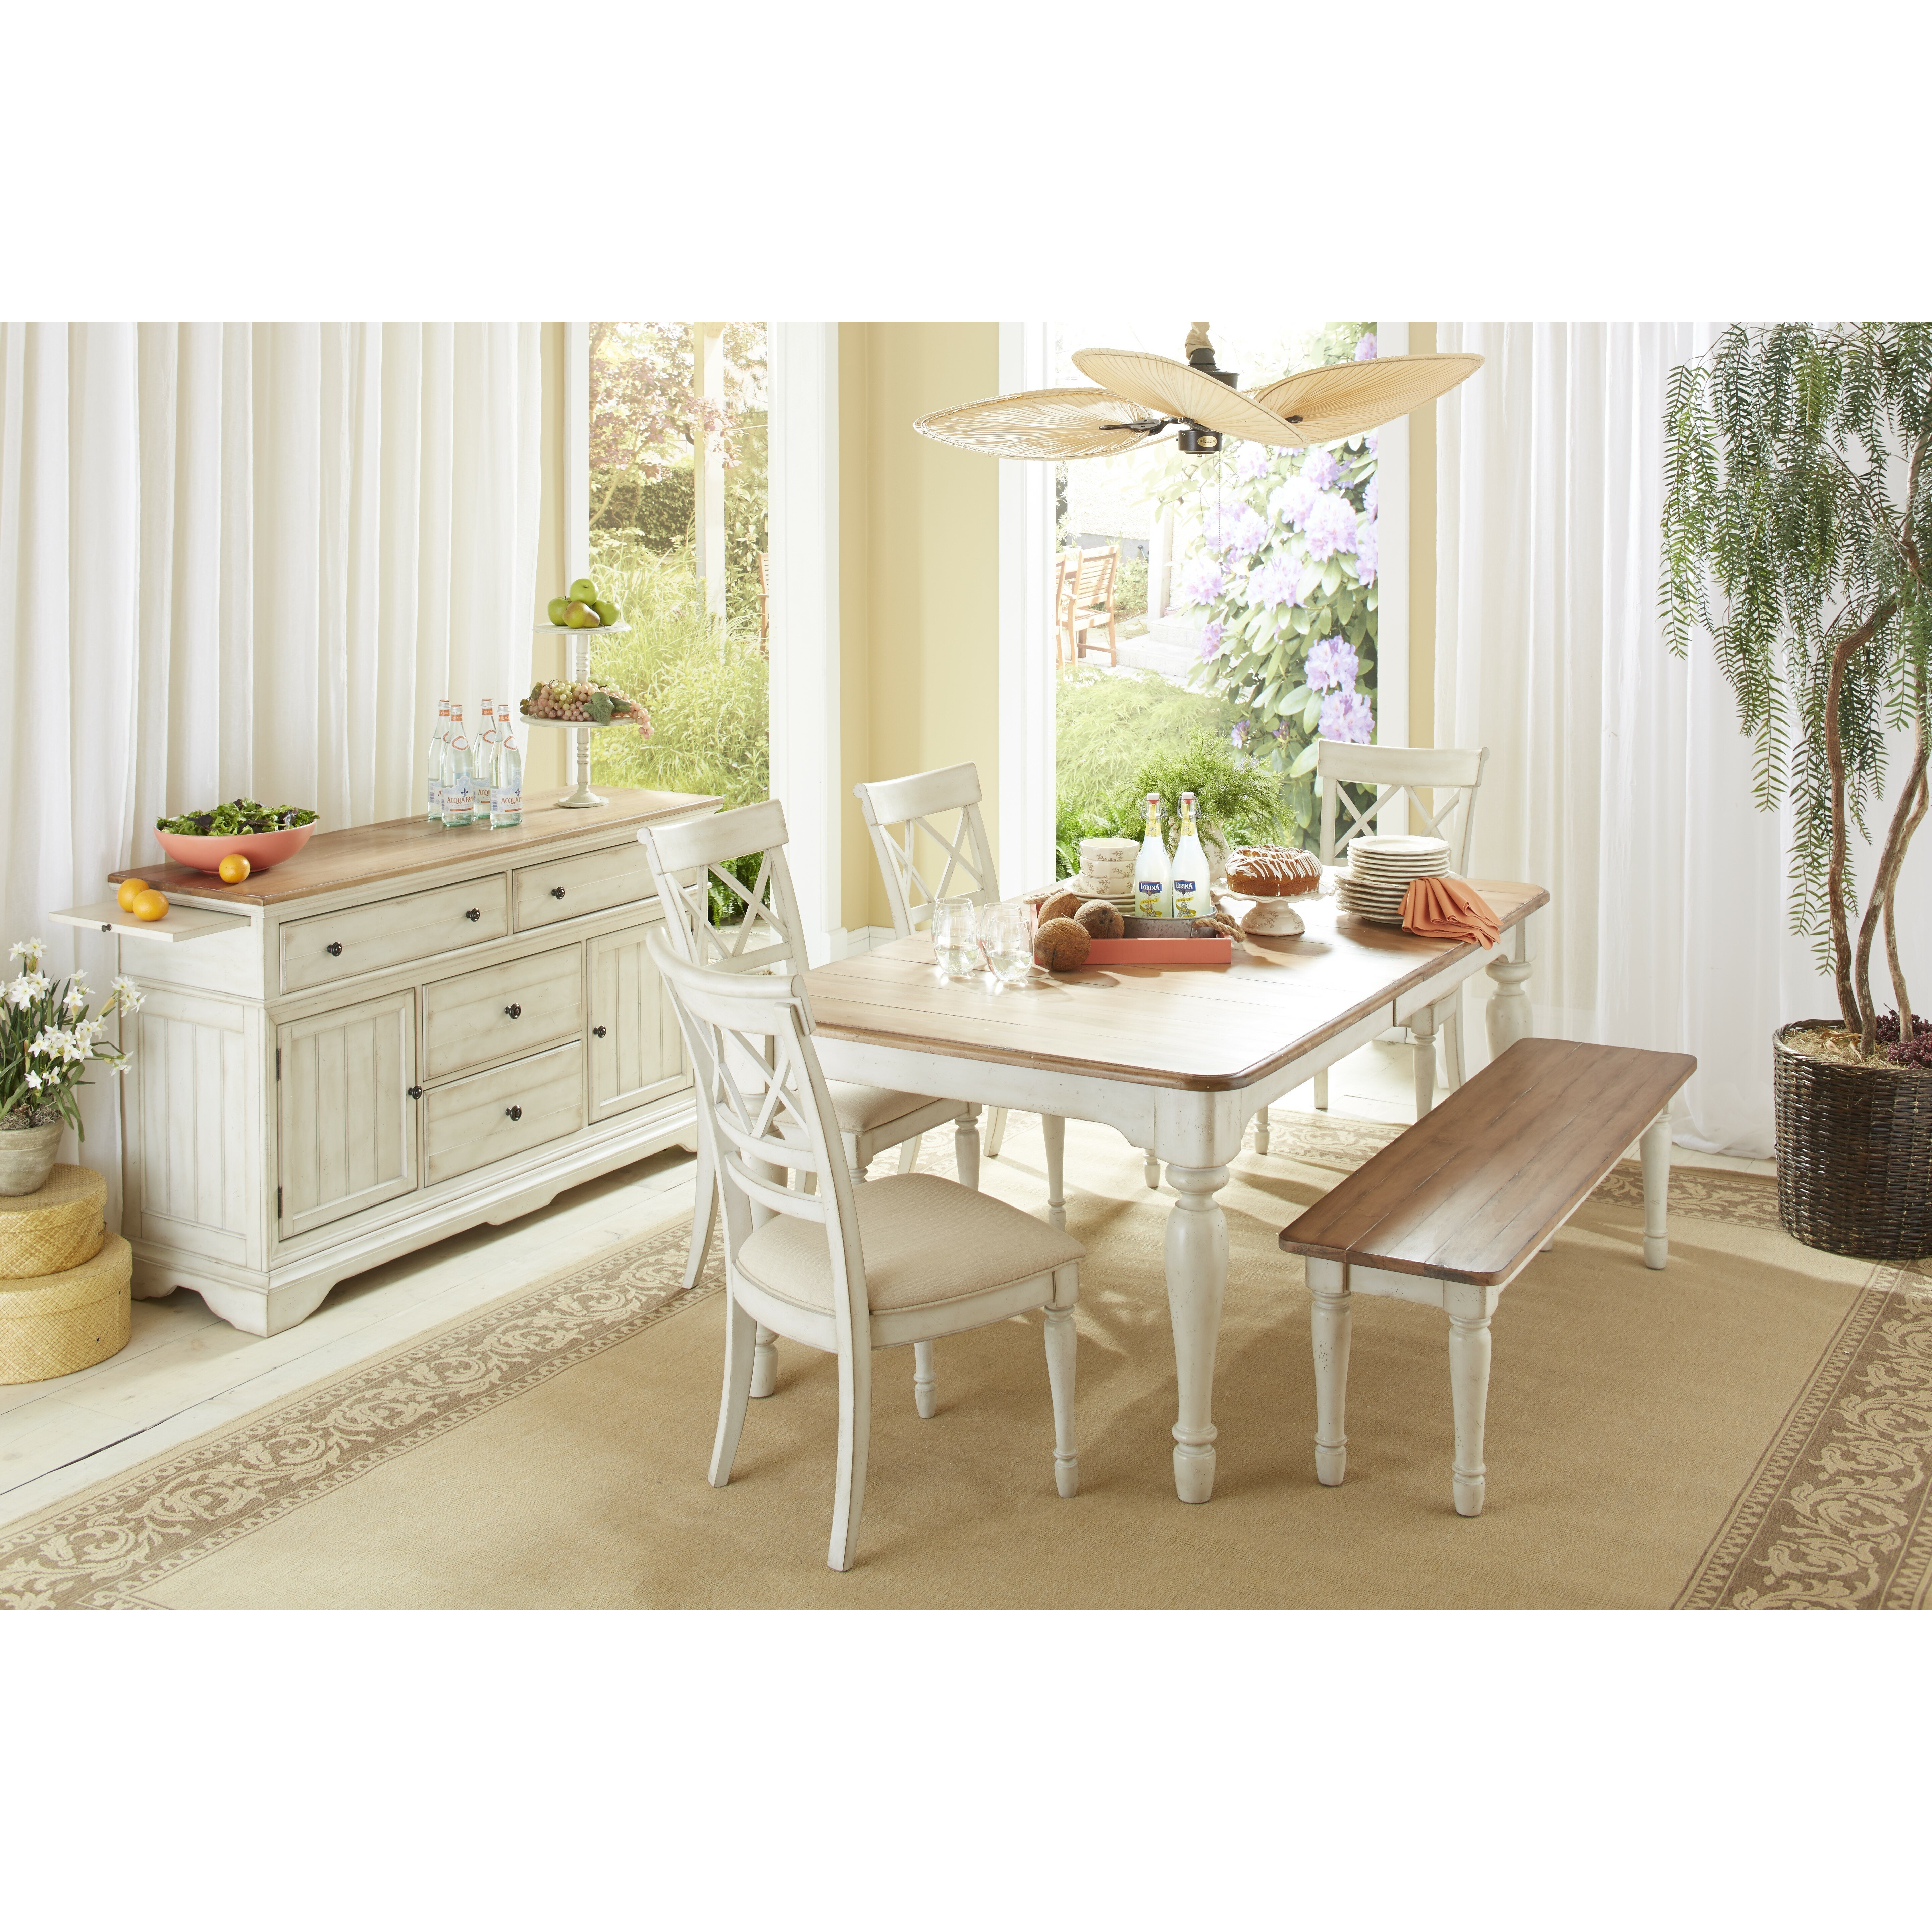 Cottage Dining Room Sets: Cresent Furniture Cottage 6 Piece Dining Set & Reviews